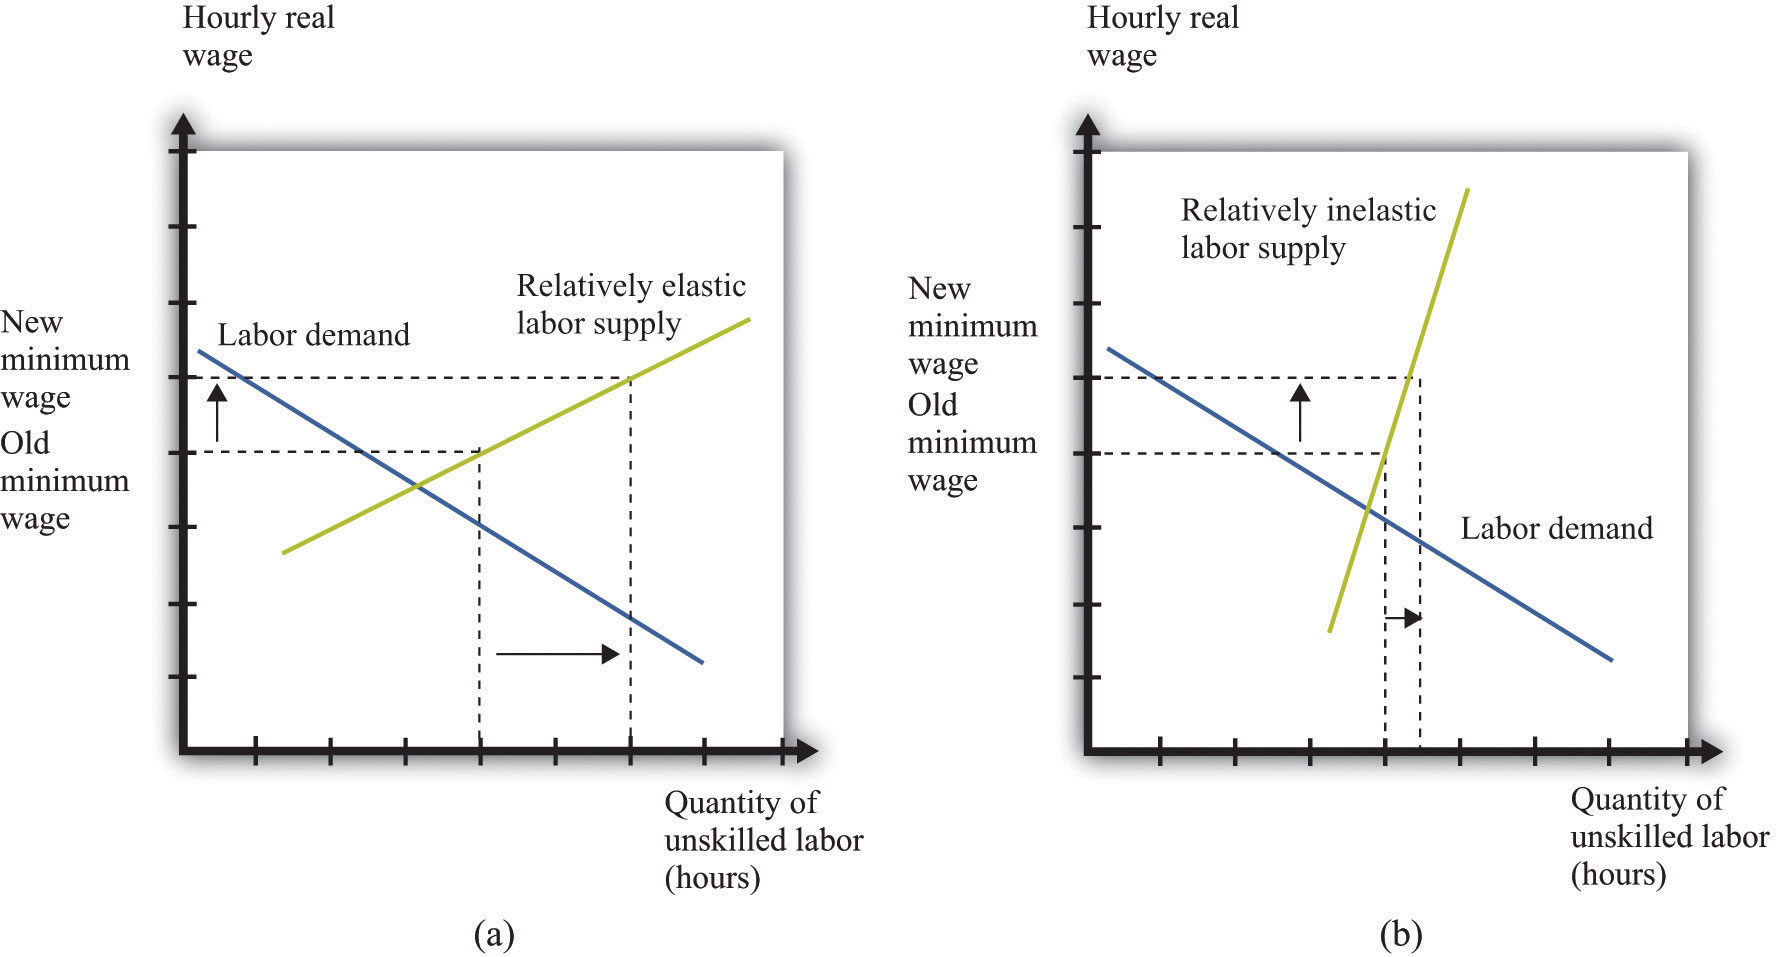 microeconomics theory through applications 1 0 flatworld if the labor supply is relatively elastic a a change in the minimum wage has a big effect on unemployment while if the labor supply is relatively